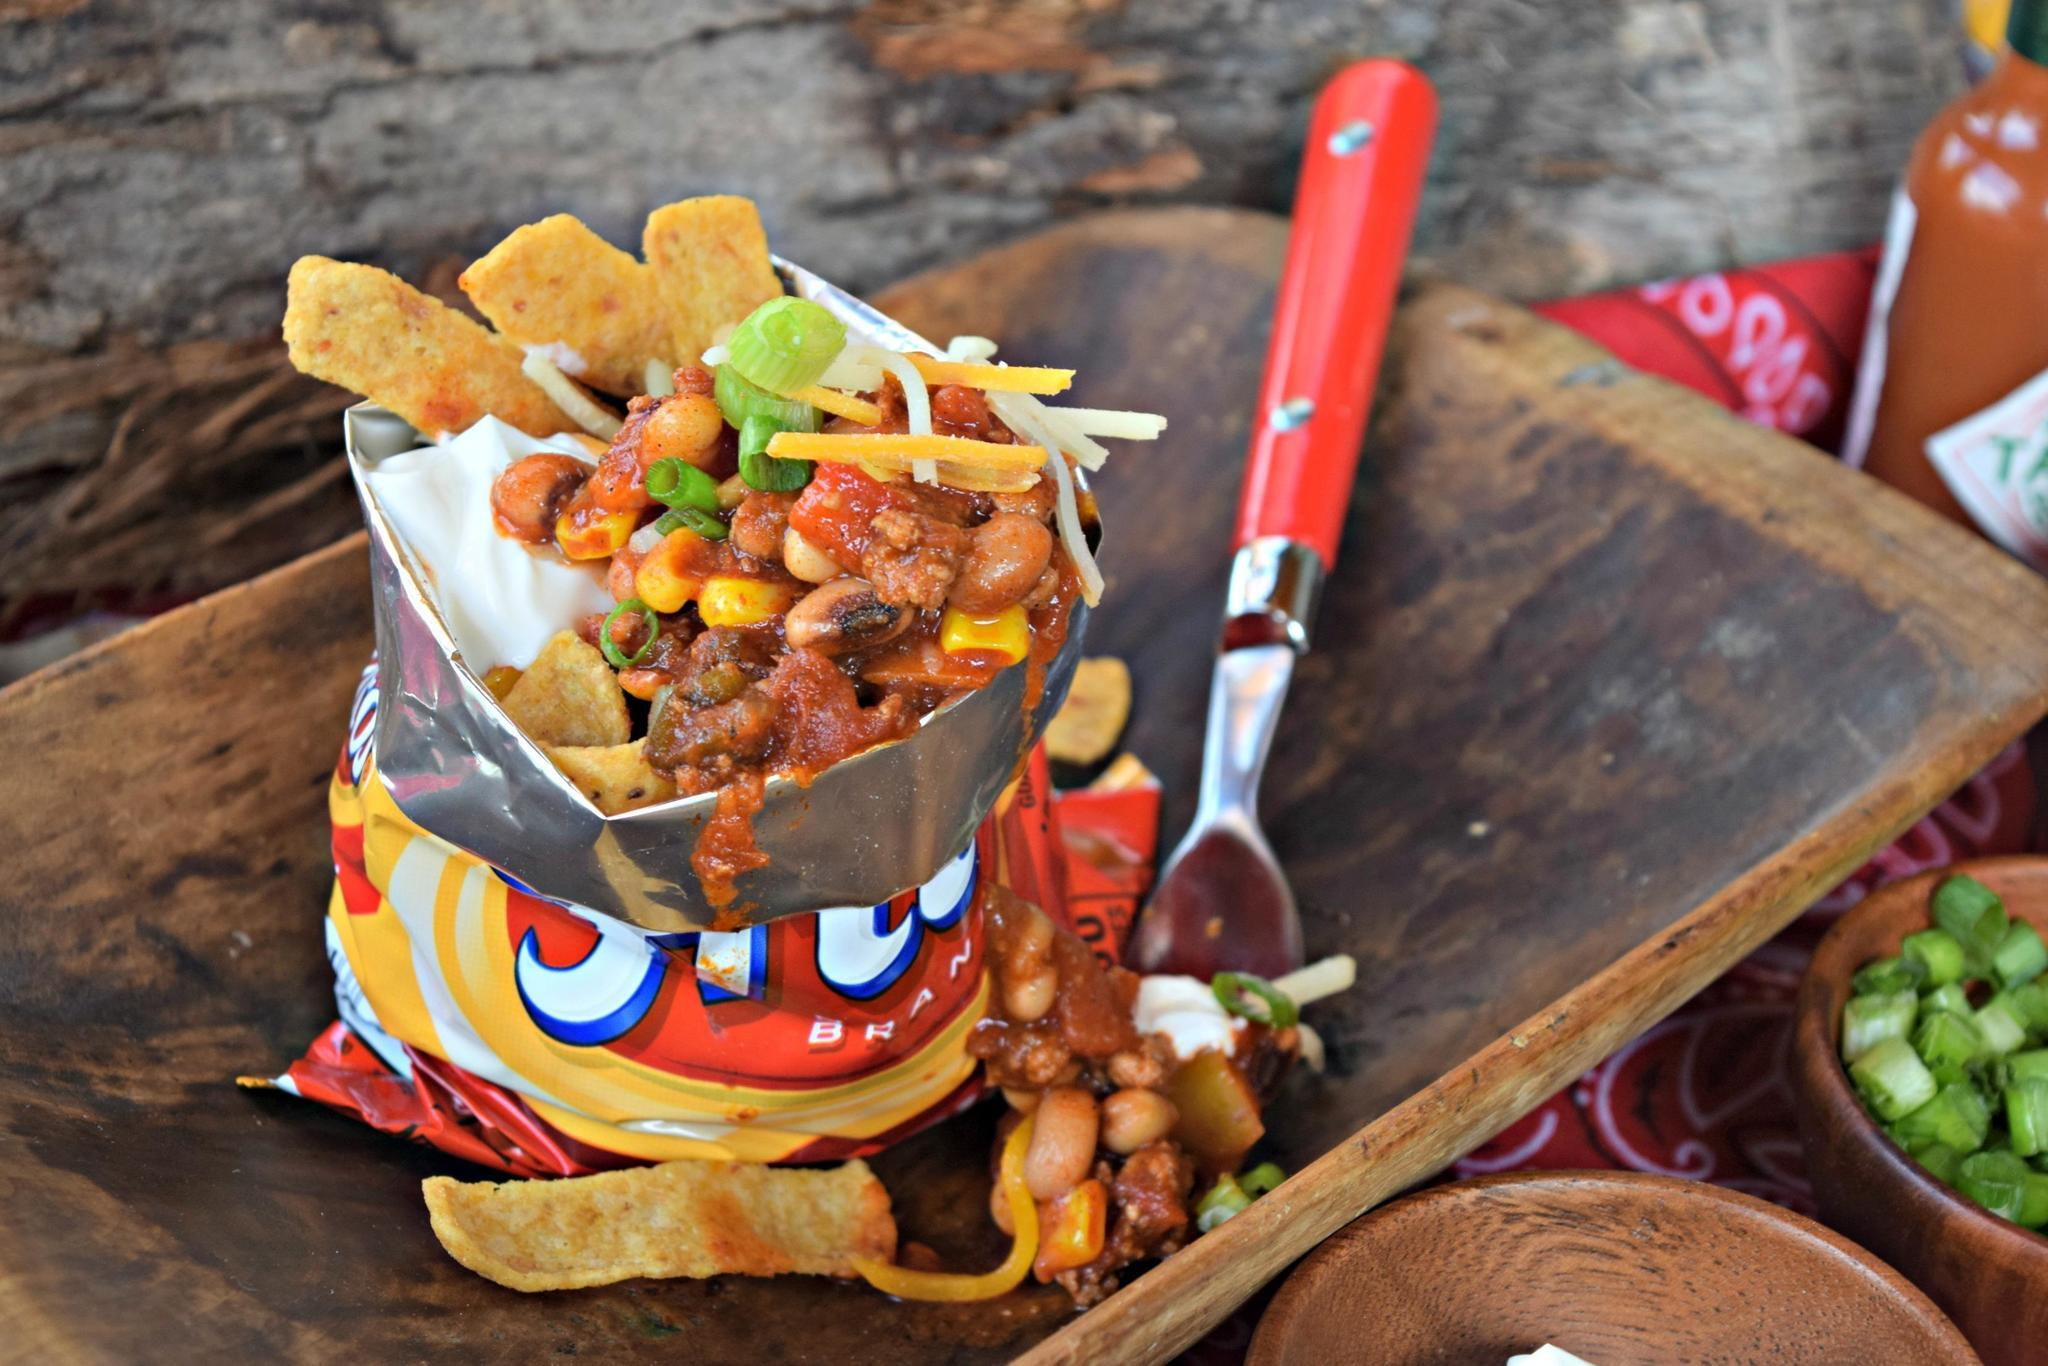 Frito Pie This Chili Based Campout Classic Is In The Bag Libertyville Review